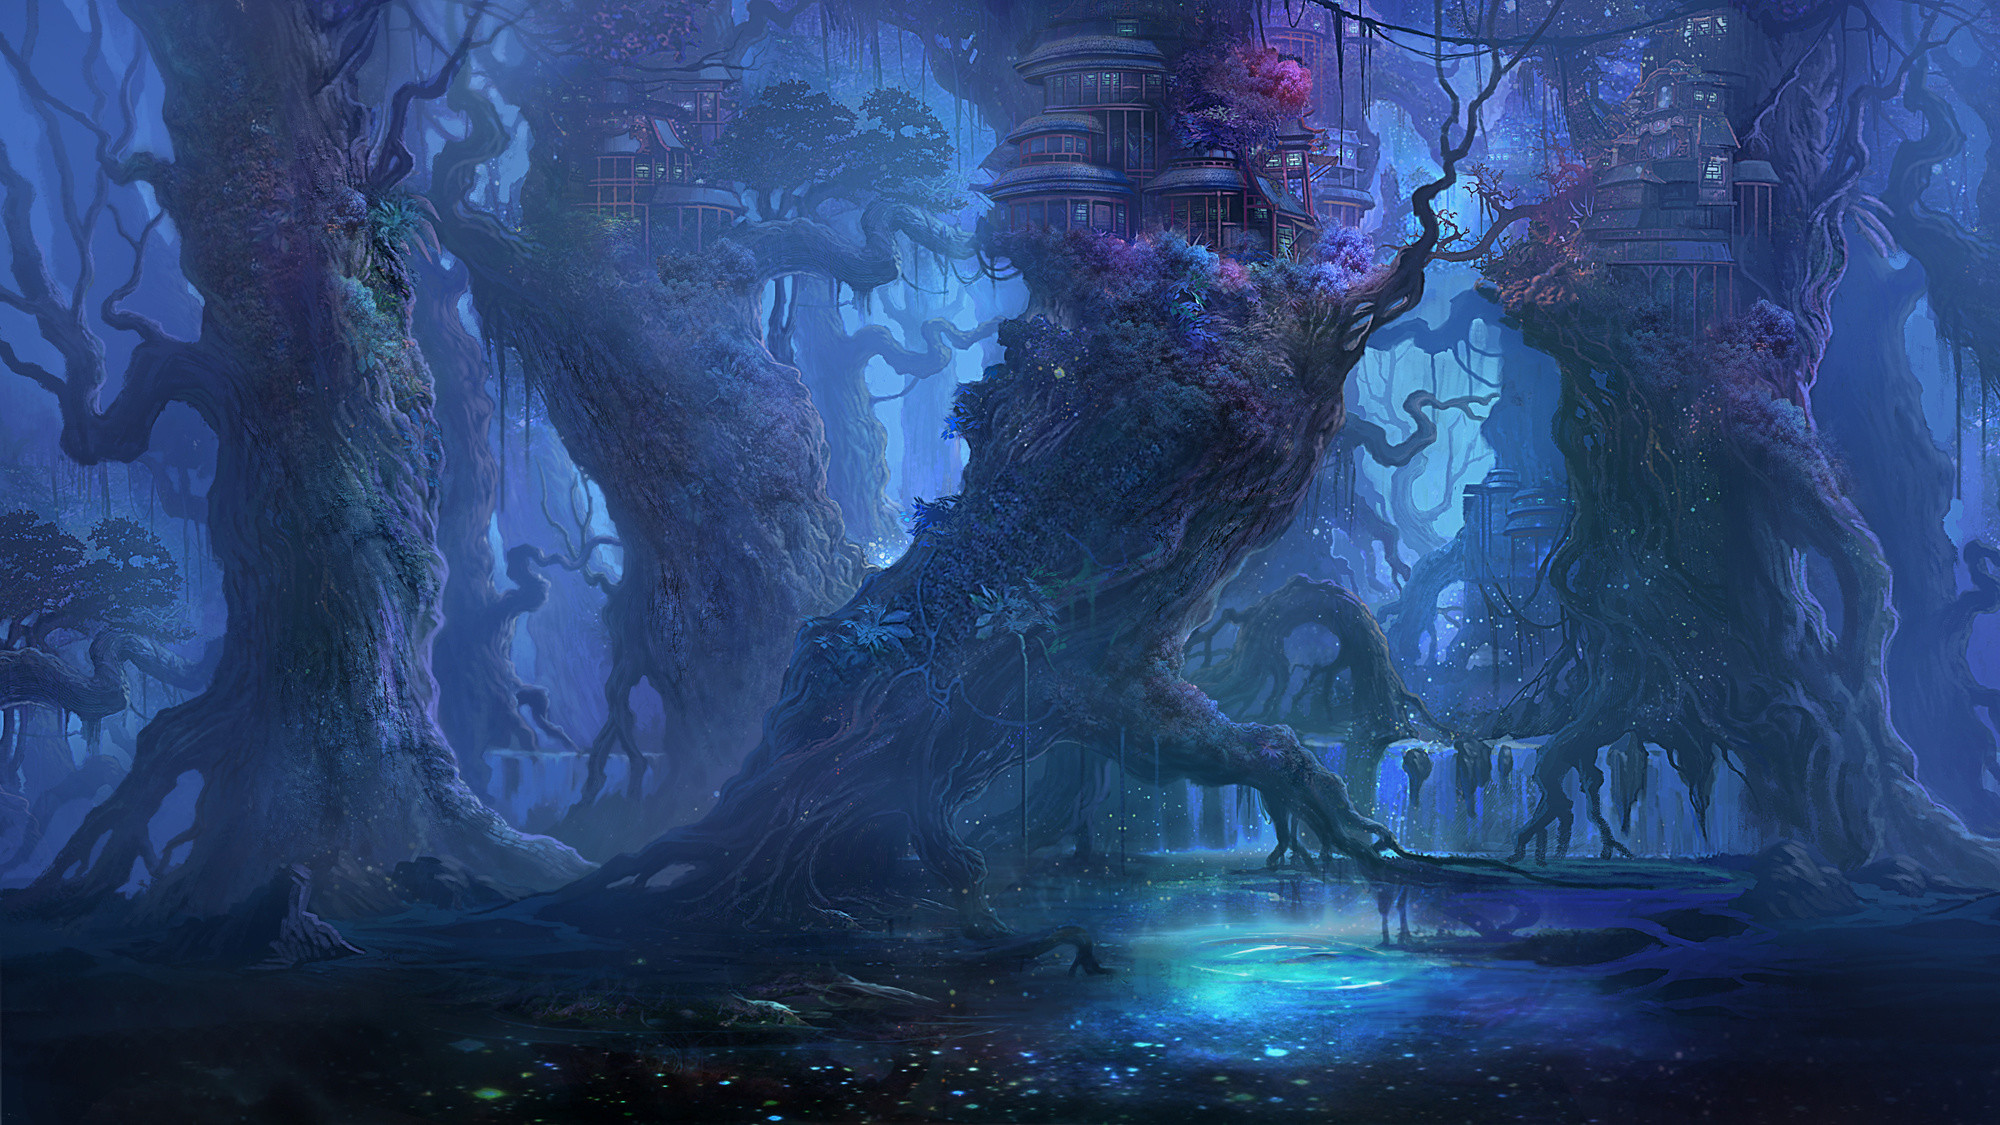 2000x1125 Fantasy Forest Landscape Desktop Wallpaper